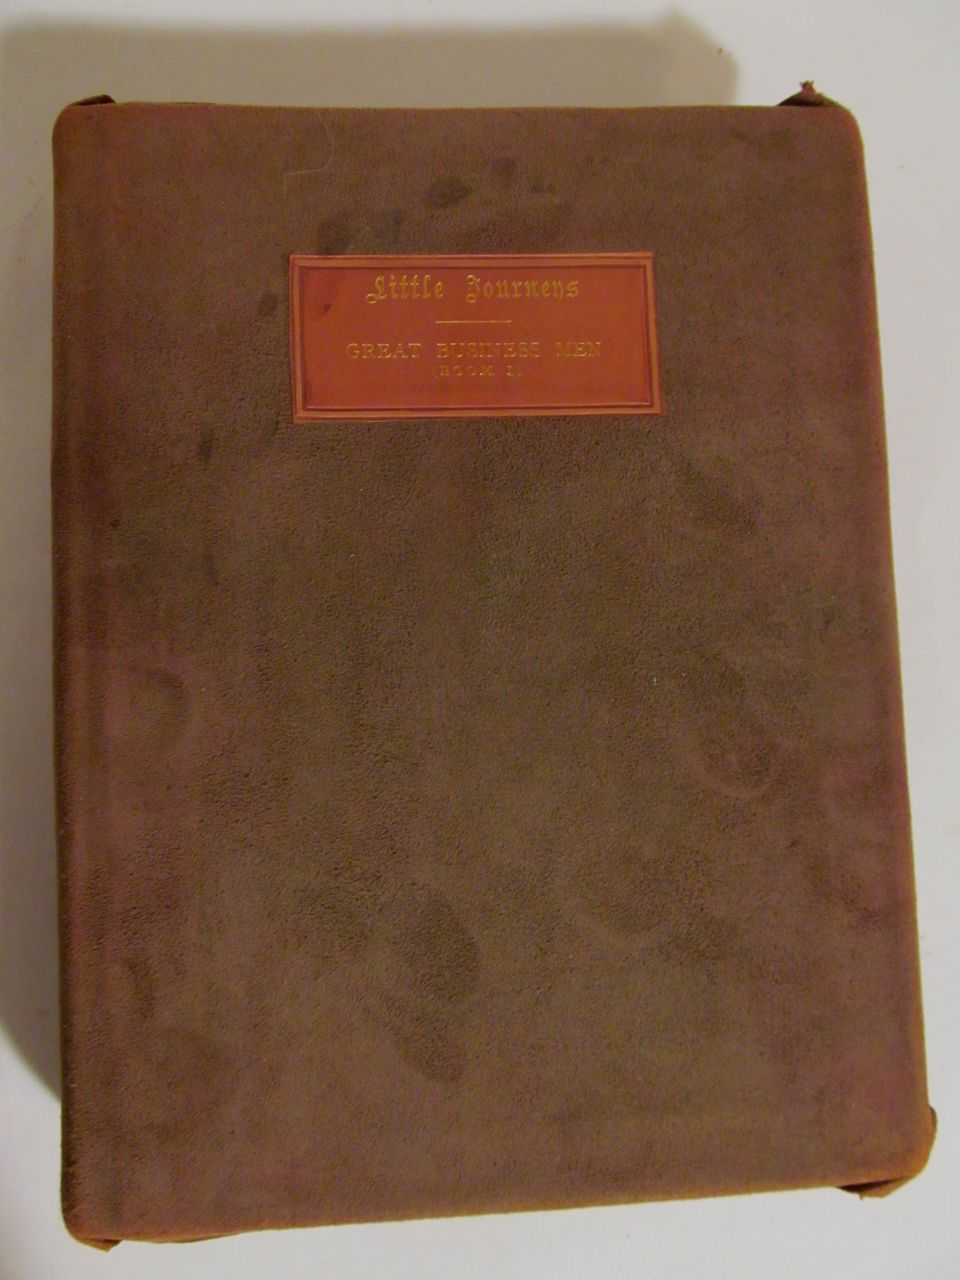 1909 Little Journeys to the Homes of Great Business Men, Elbert Hubbard, Roycroft